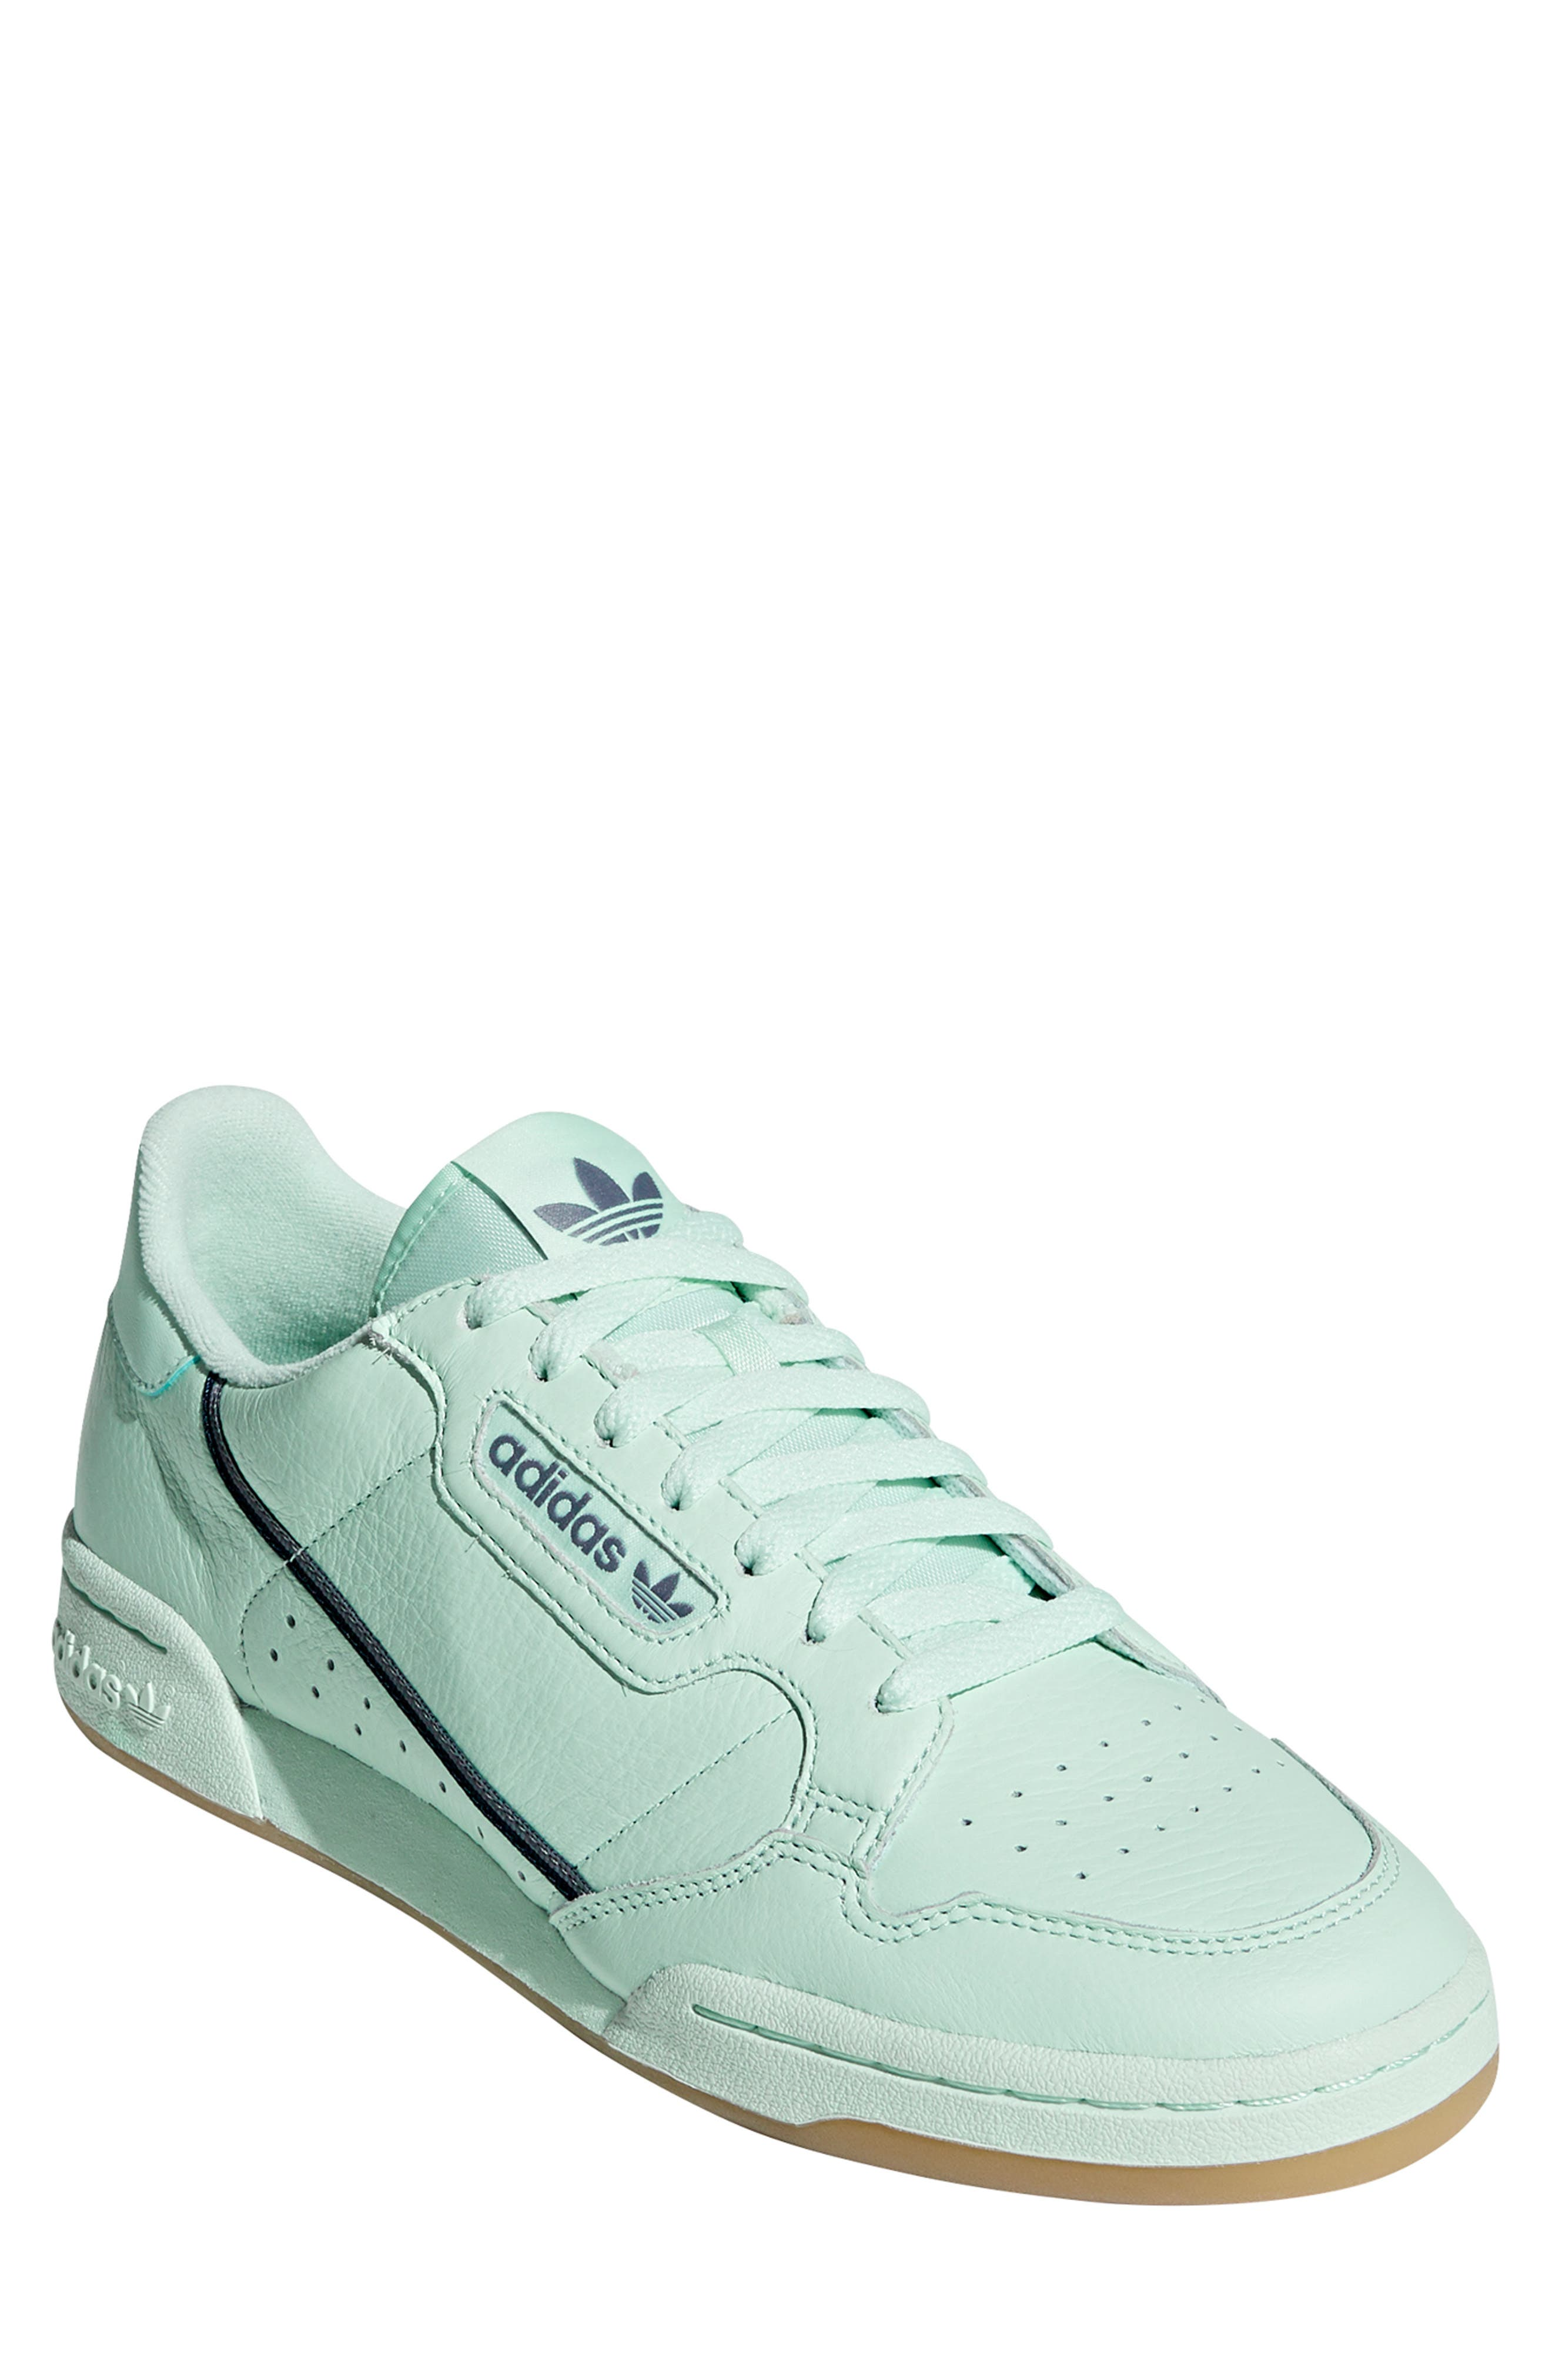 ADIDAS Continental 80 Sneaker, Main, color, ICE MINT/ NAVY/ GREY